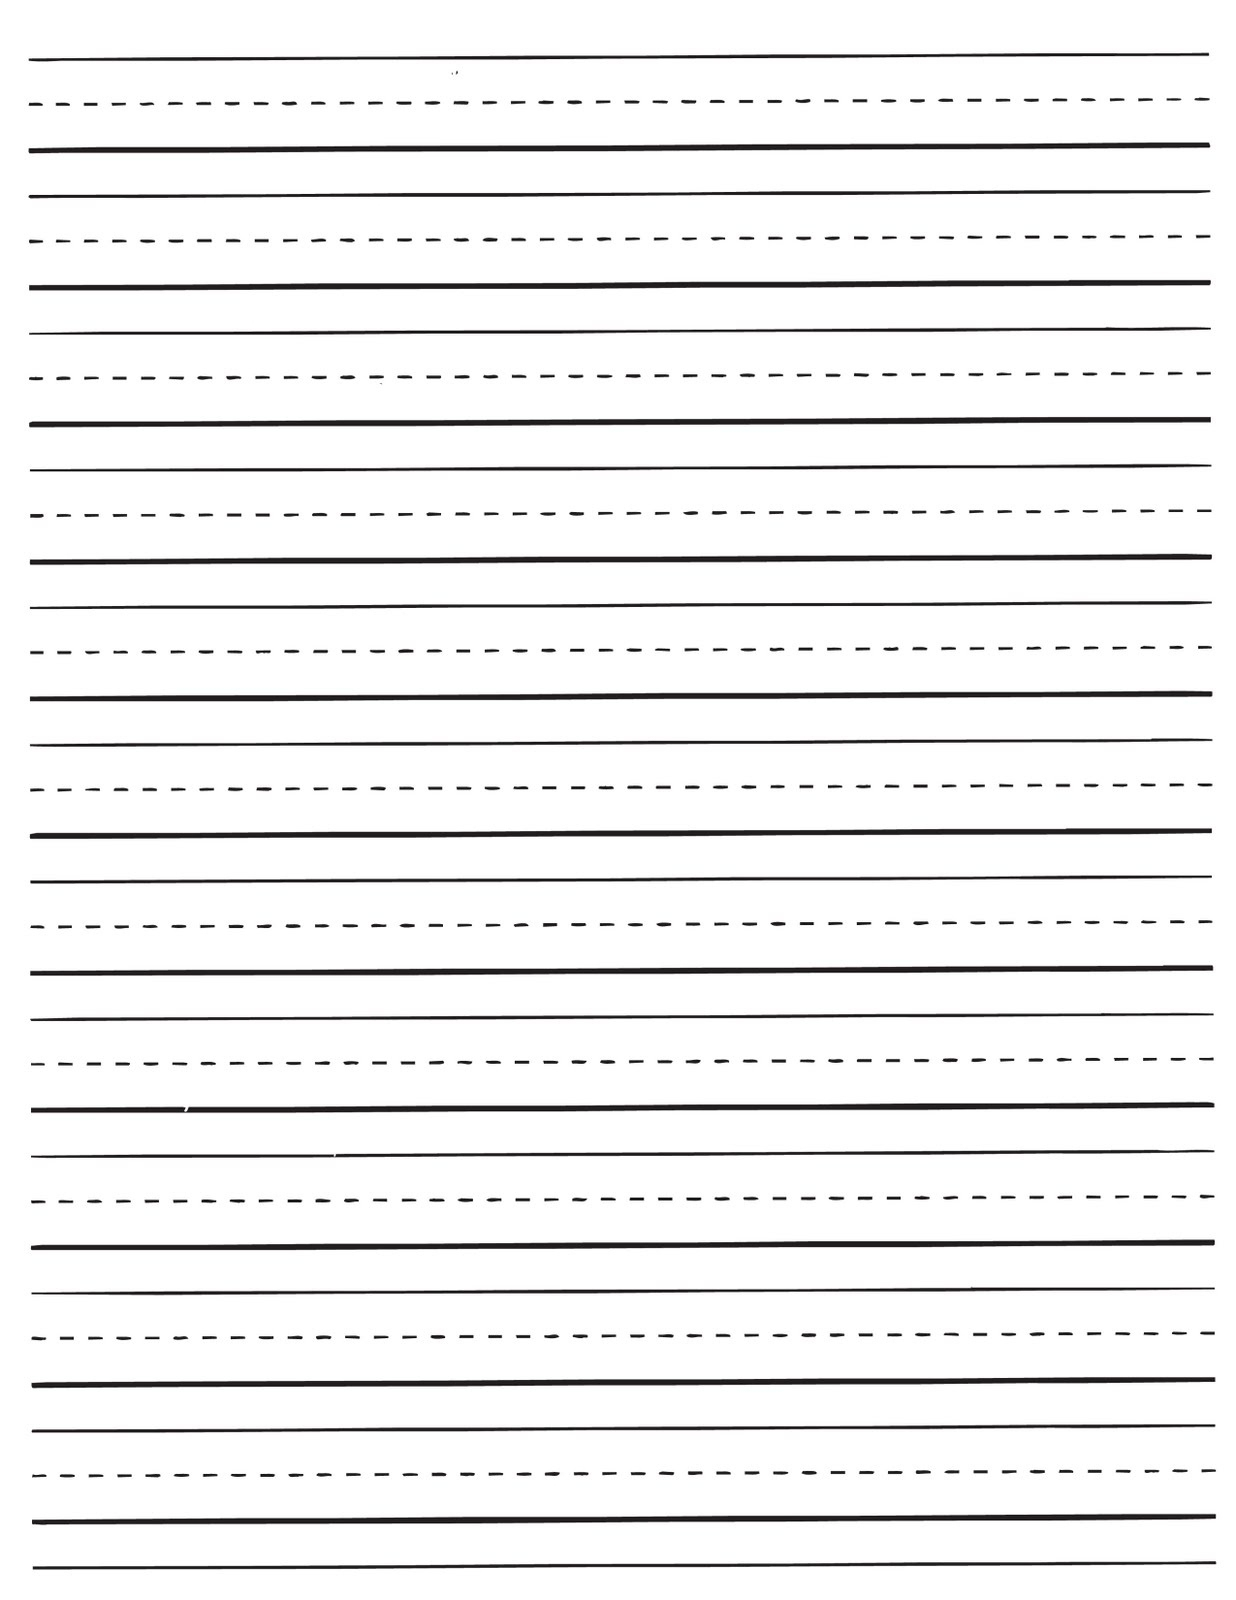 Printable Lined Paper For Kids | World Of Label - Free Printable Kindergarten Lined Paper Template